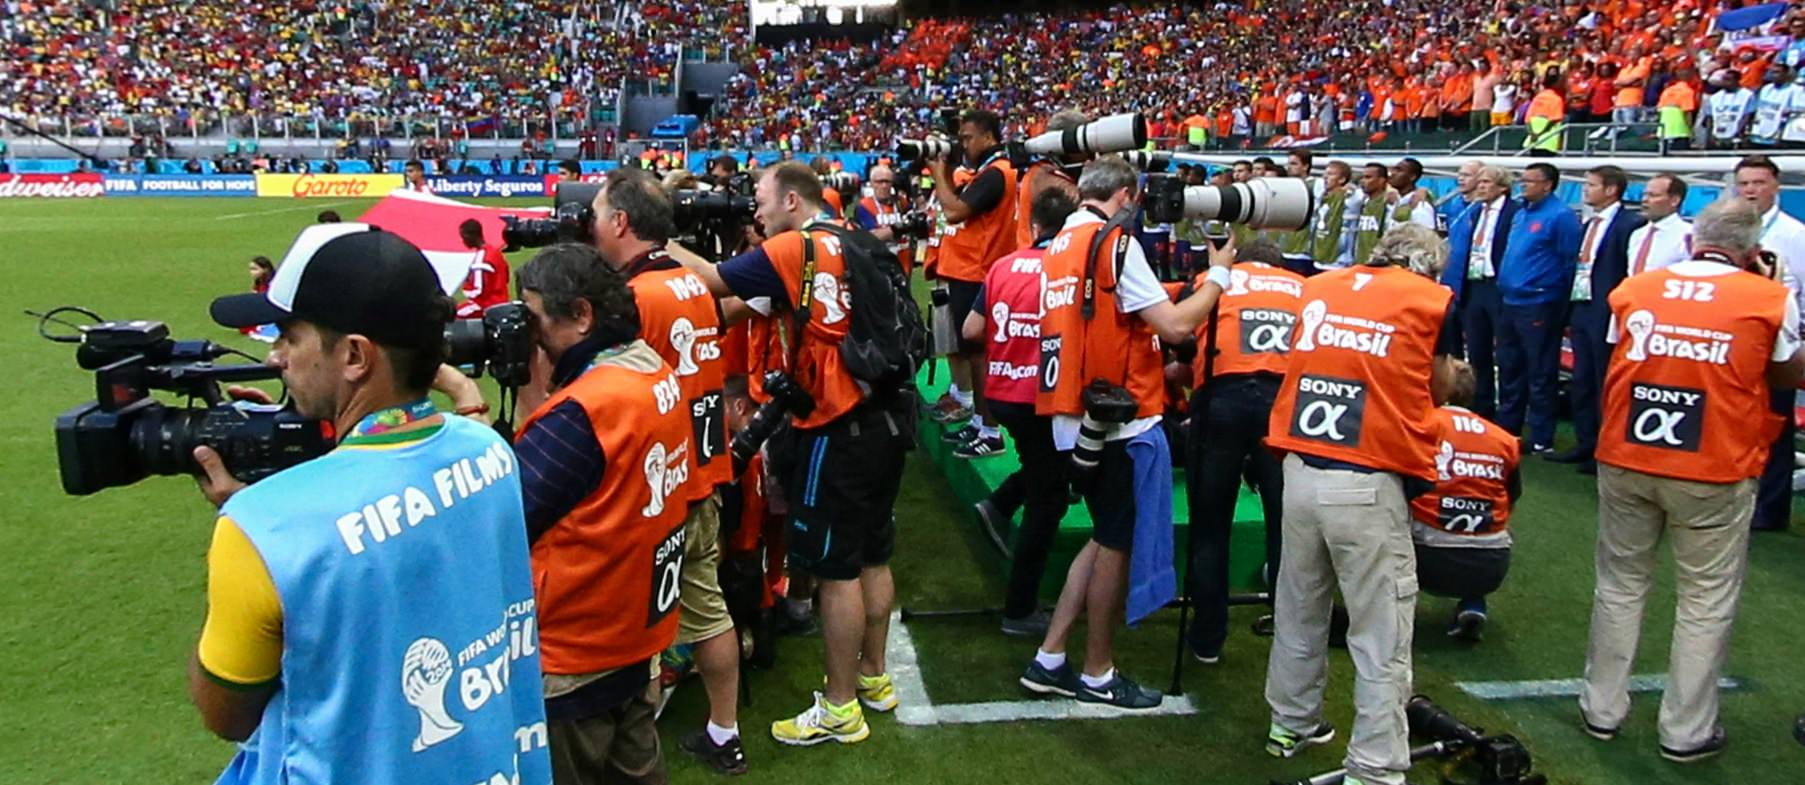 canon-vs-nikon-using-sony-vests Canon vs Nikon war still waging at major sports events Exposure